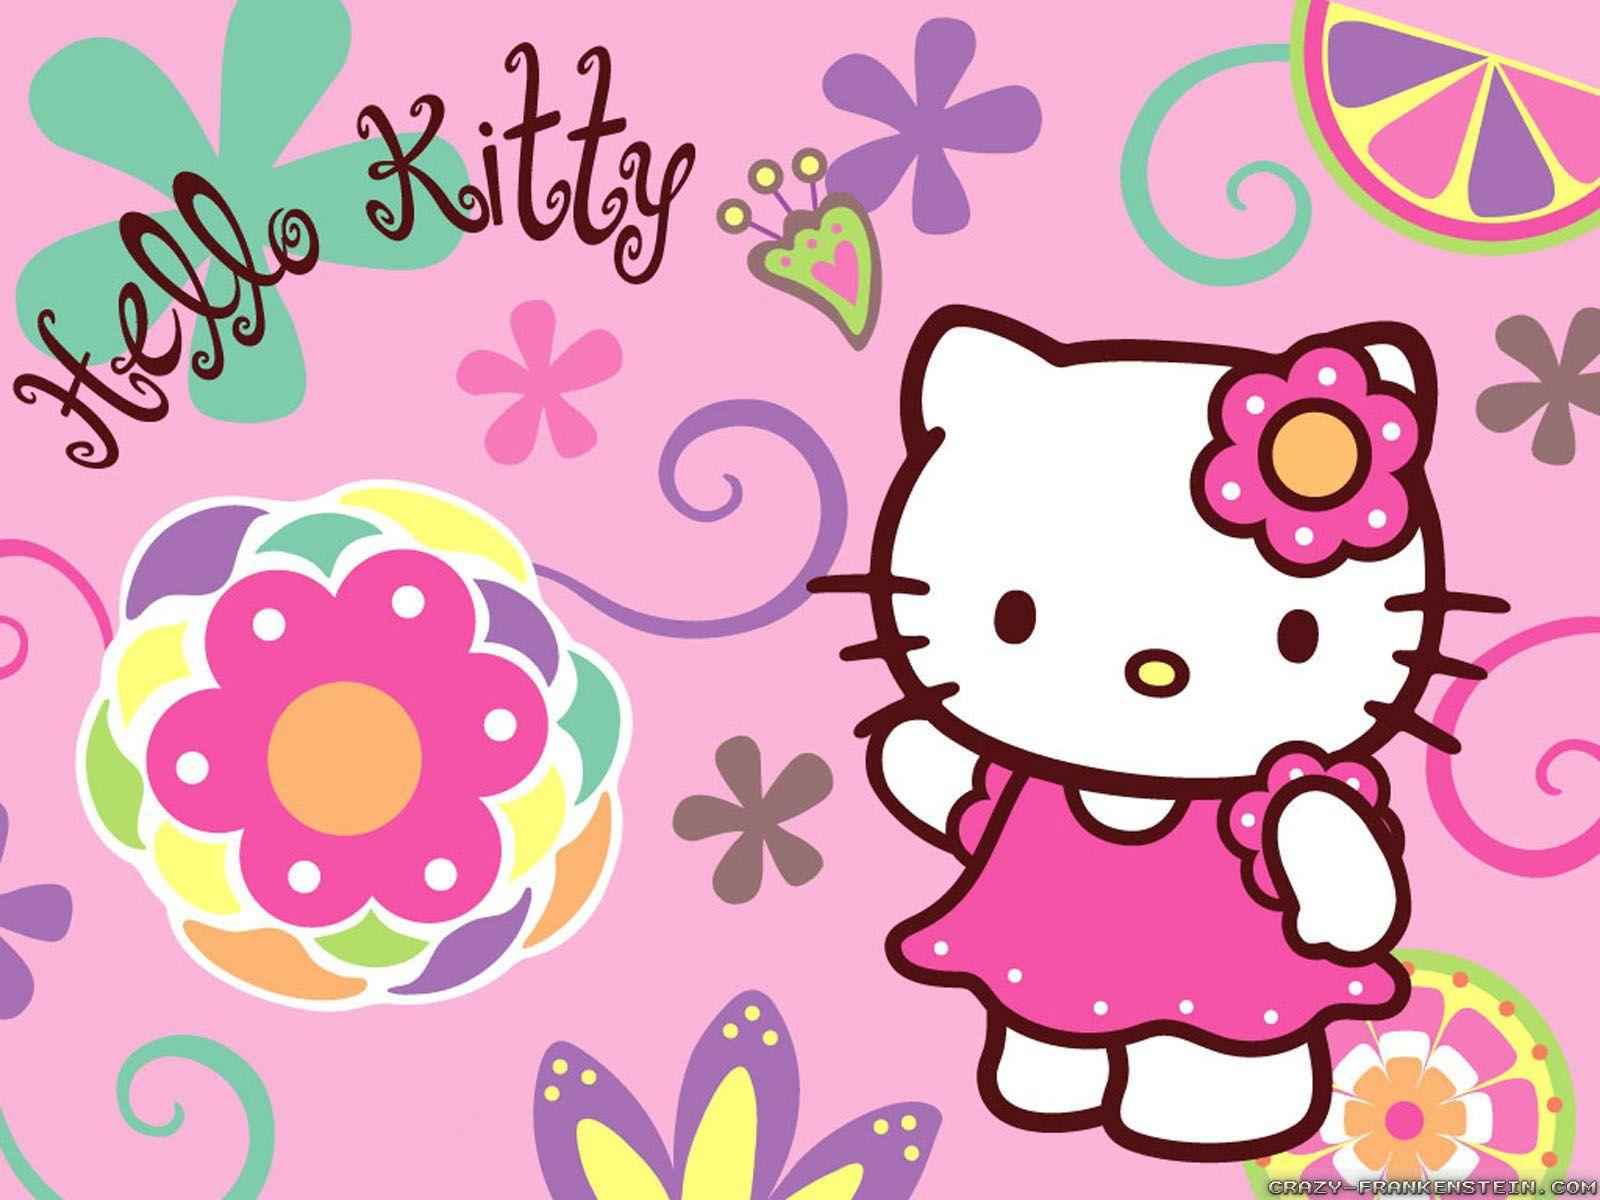 Wonderful Wallpaper Hello Kitty 1080p - xUJitYk  Gallery_47694.jpg